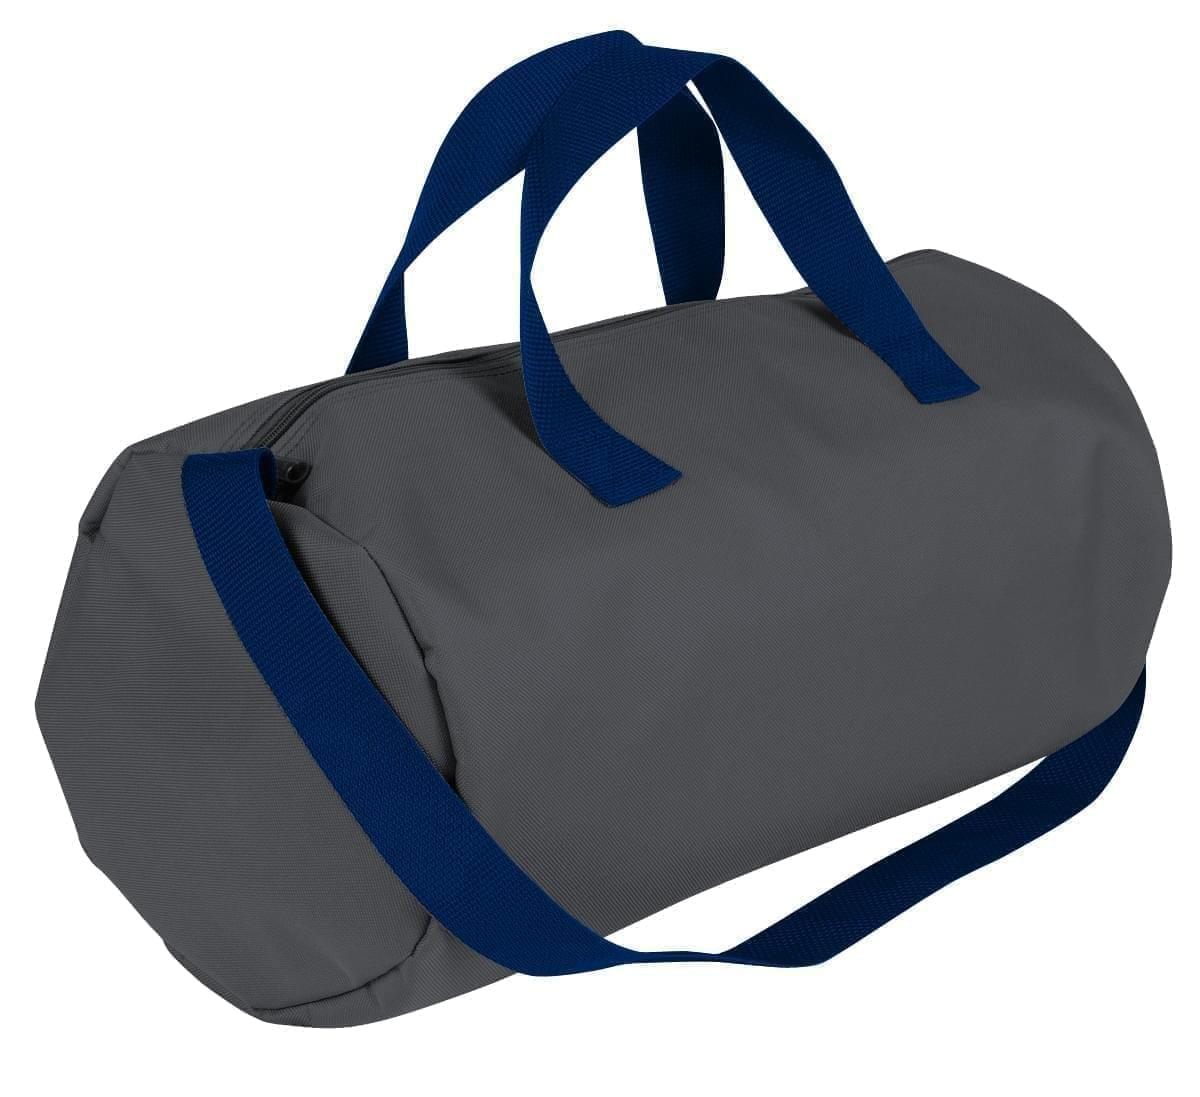 USA Made Nylon Poly Gym Roll Bags, Graphite-Navy, ROCX31AARZ